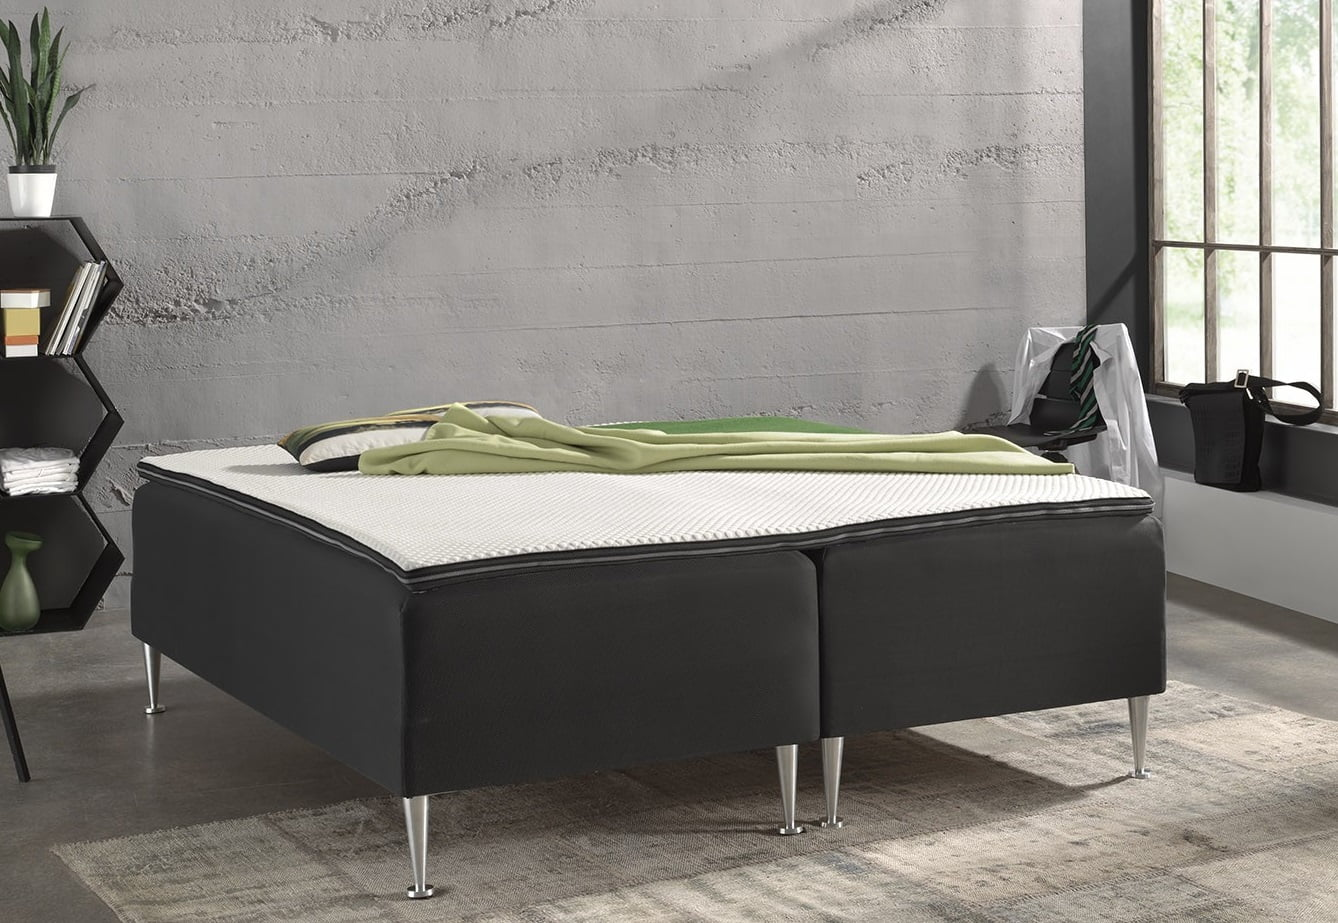 140x200 affordable matelas mousse poli lattex indformable tissu strech trs rsistant hauteur cm. Black Bedroom Furniture Sets. Home Design Ideas